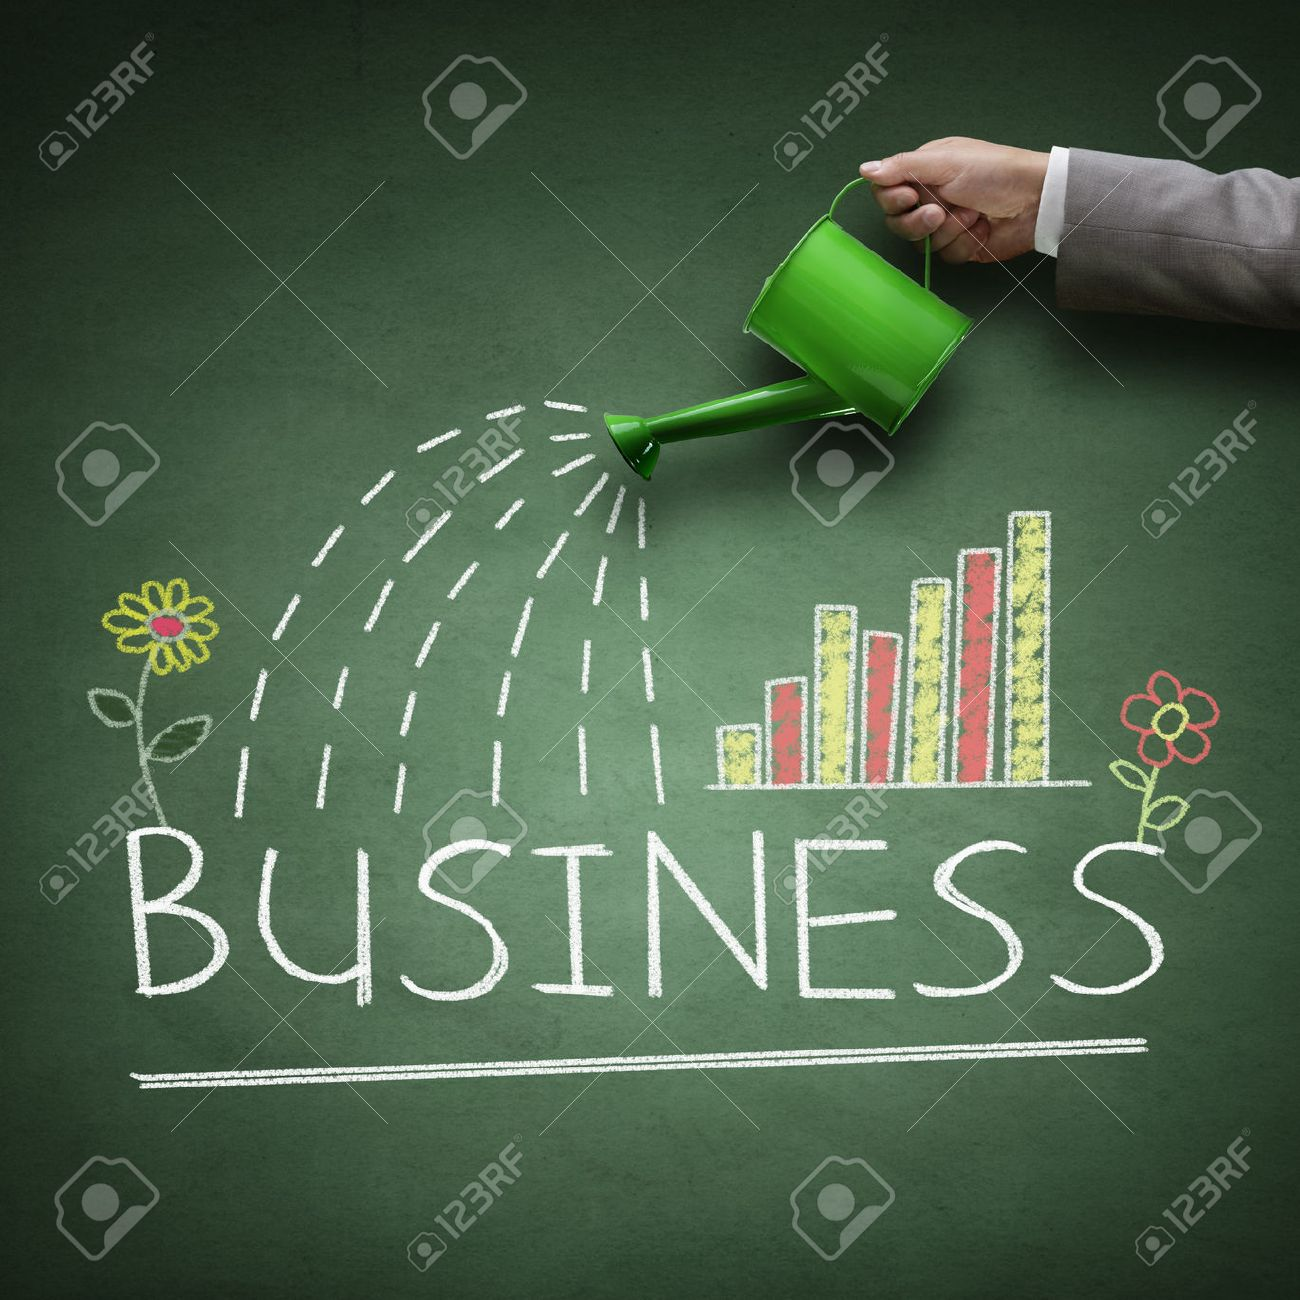 Watering can and word business drawn on a blackboard concept for business growth, investment, savings and making money Stock Photo - 45840469